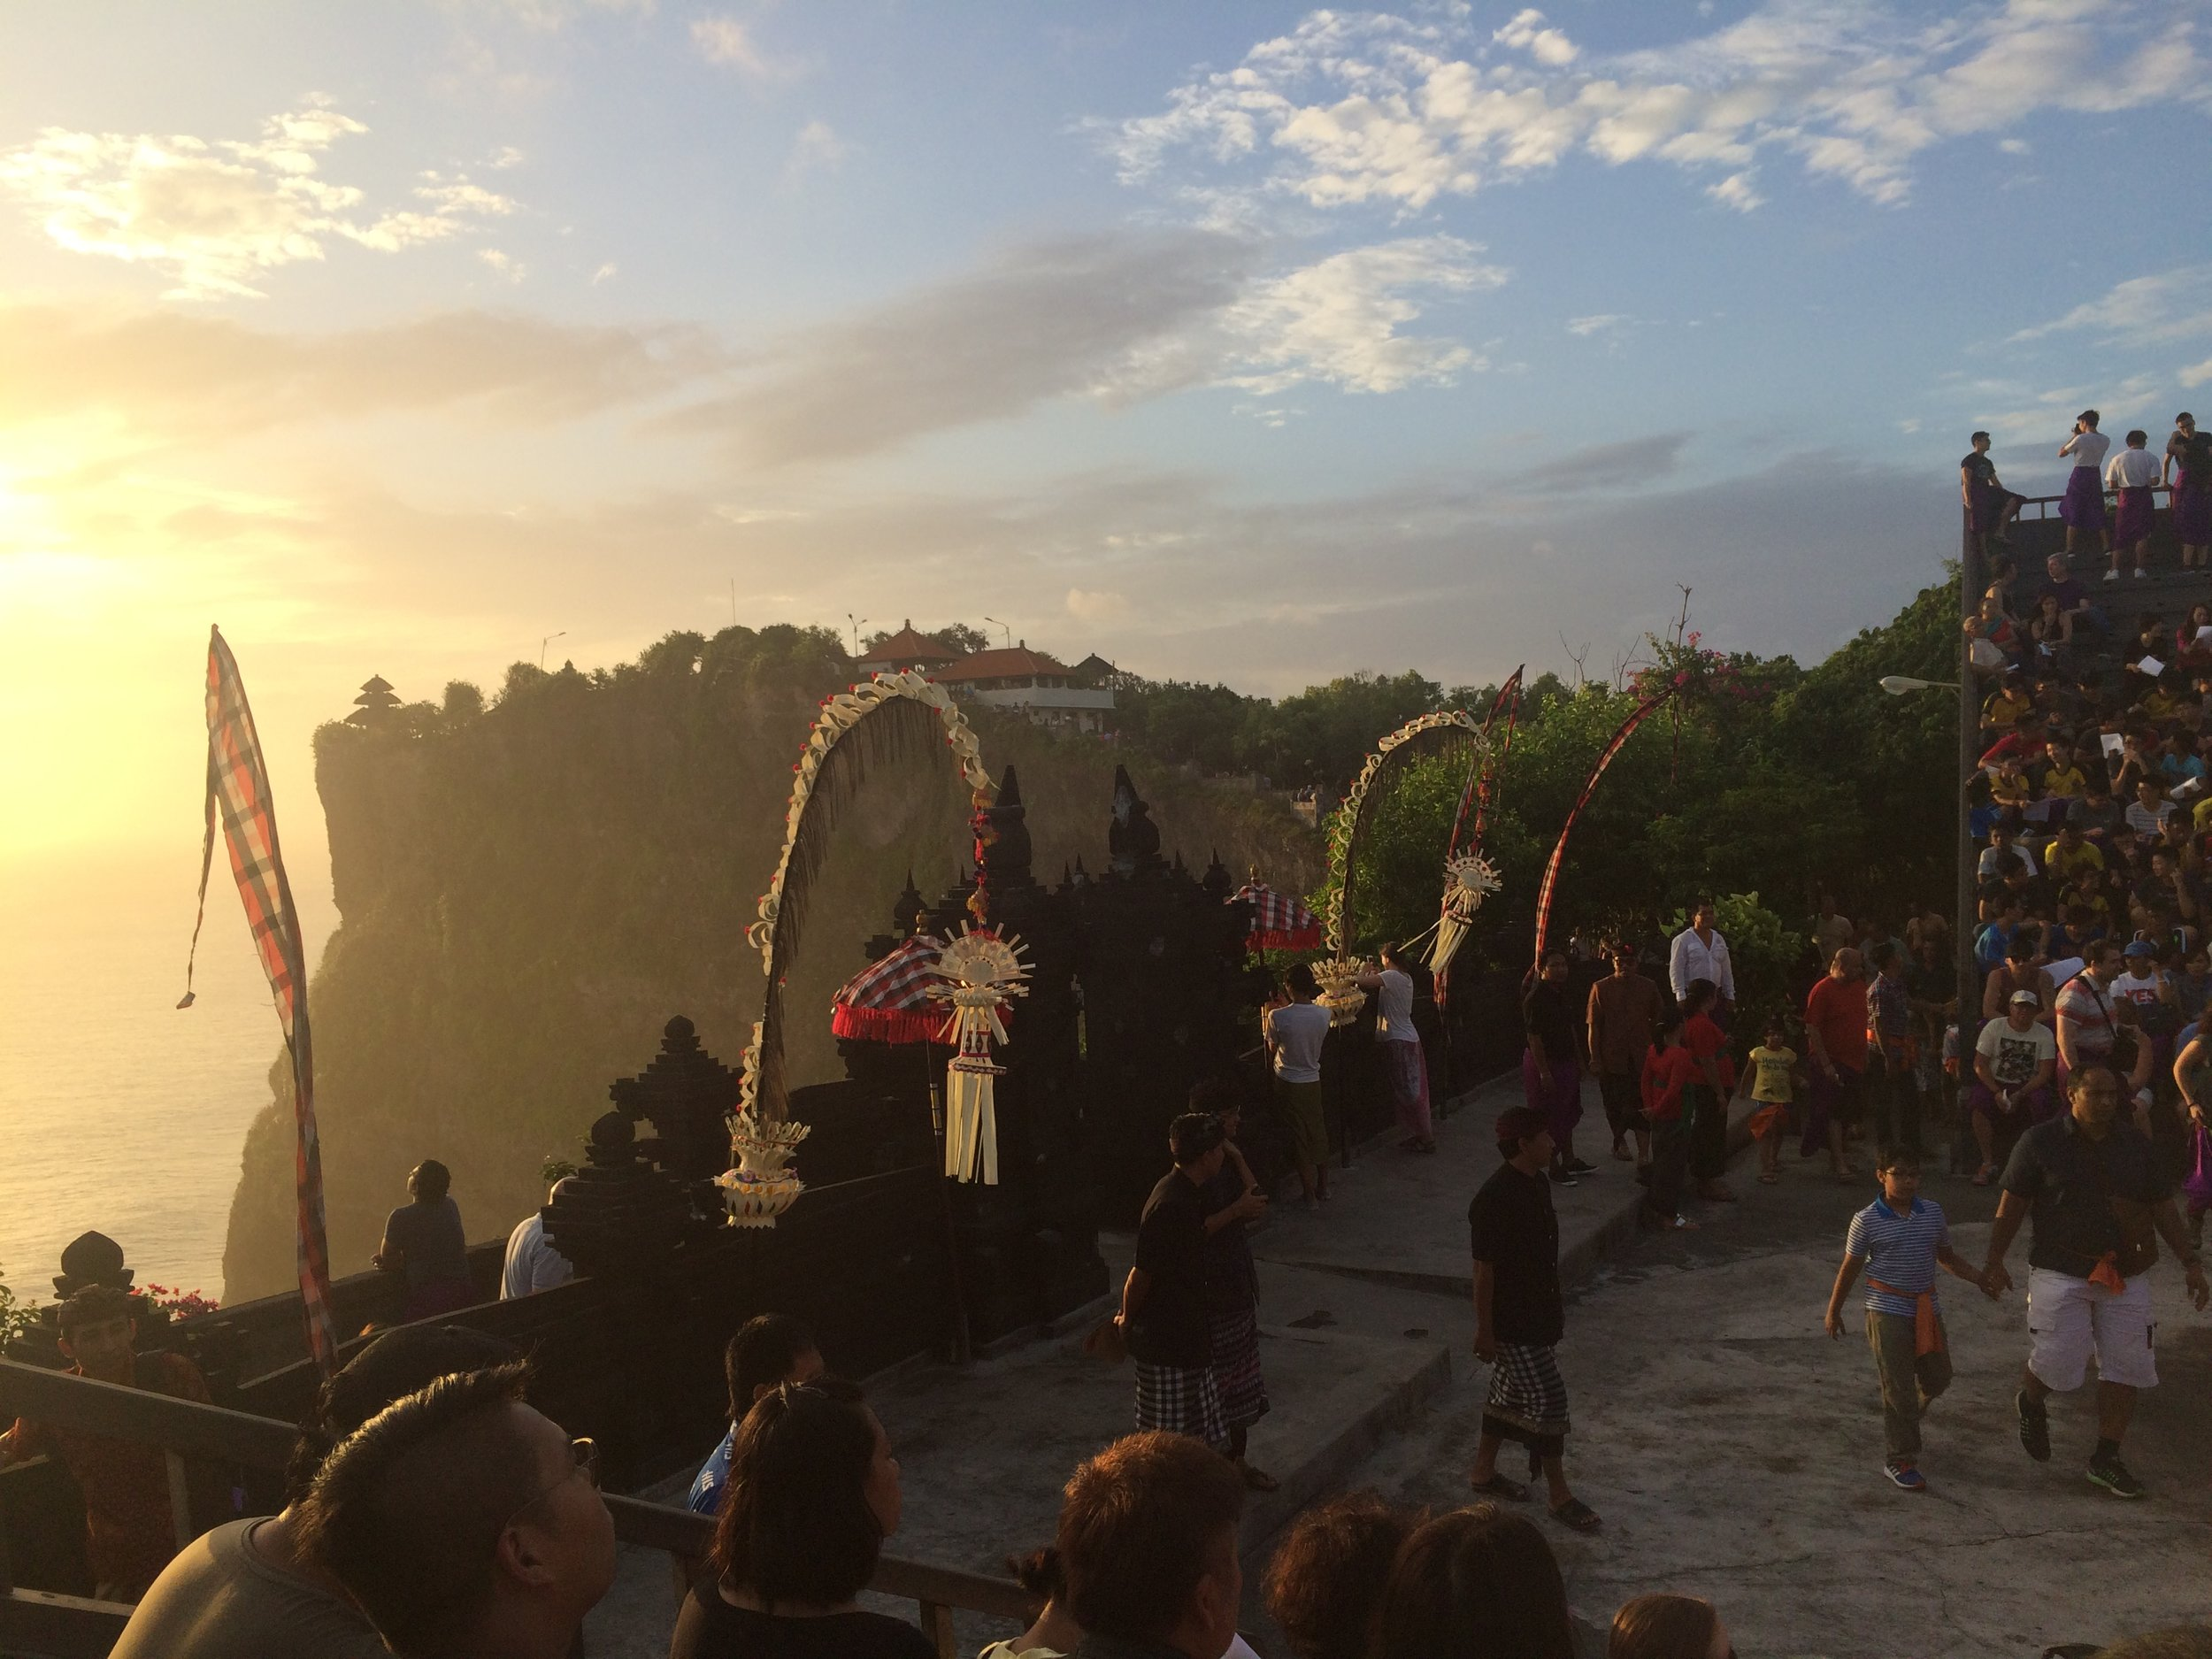 Sunset view for the Kecak dance in Uluwatu Temple.